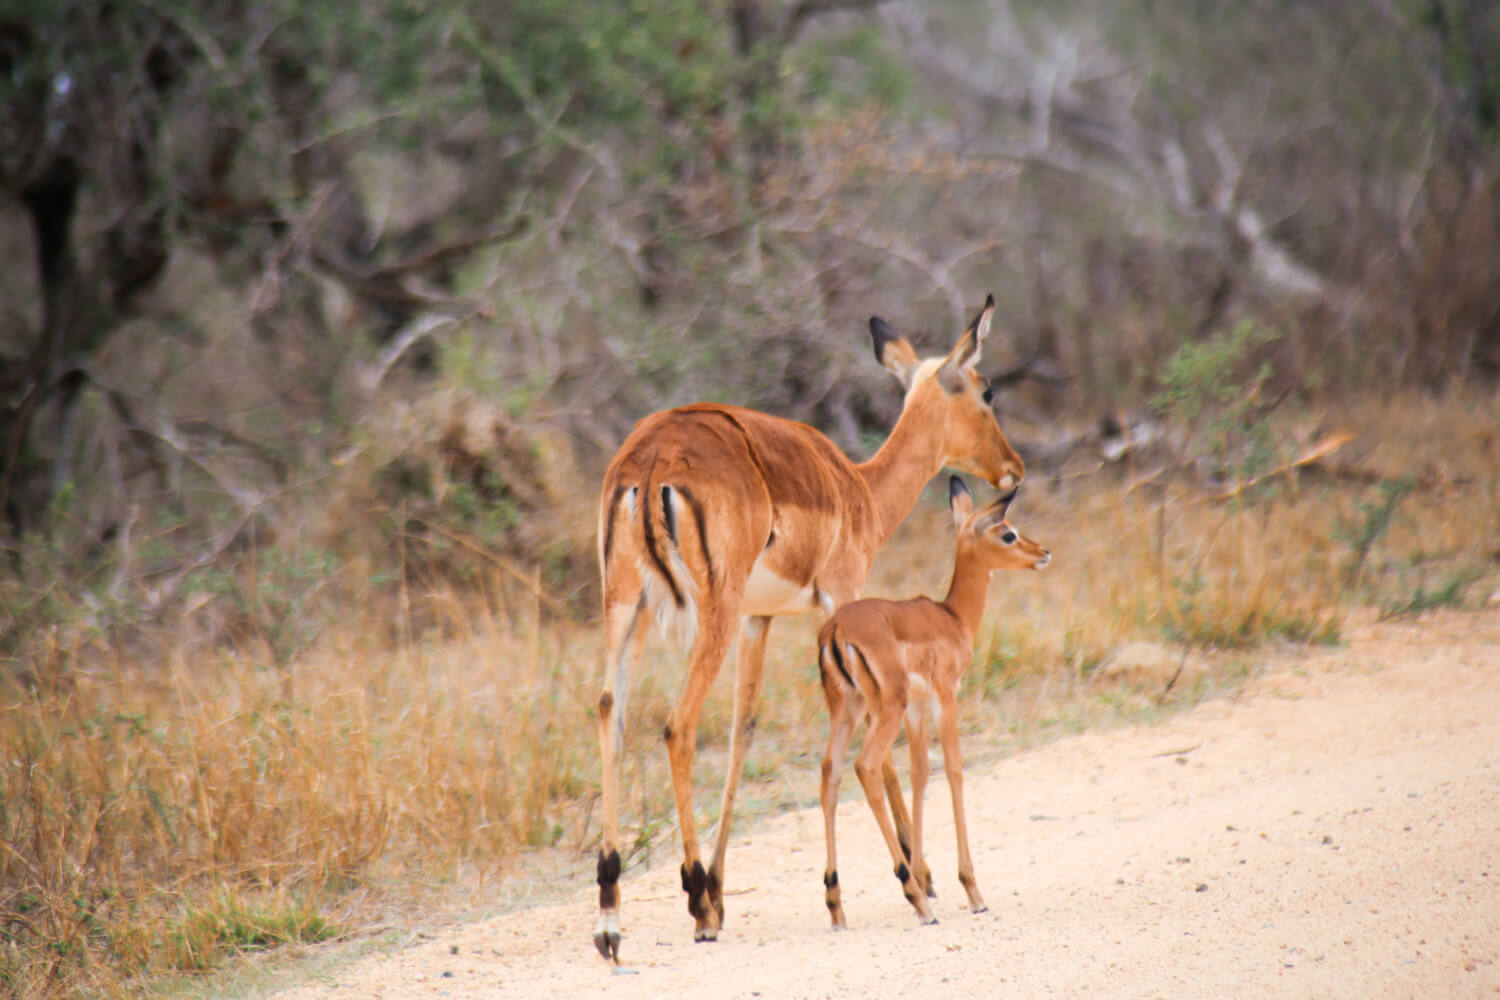 November in Kruger National Park allowed us to see so many babies!